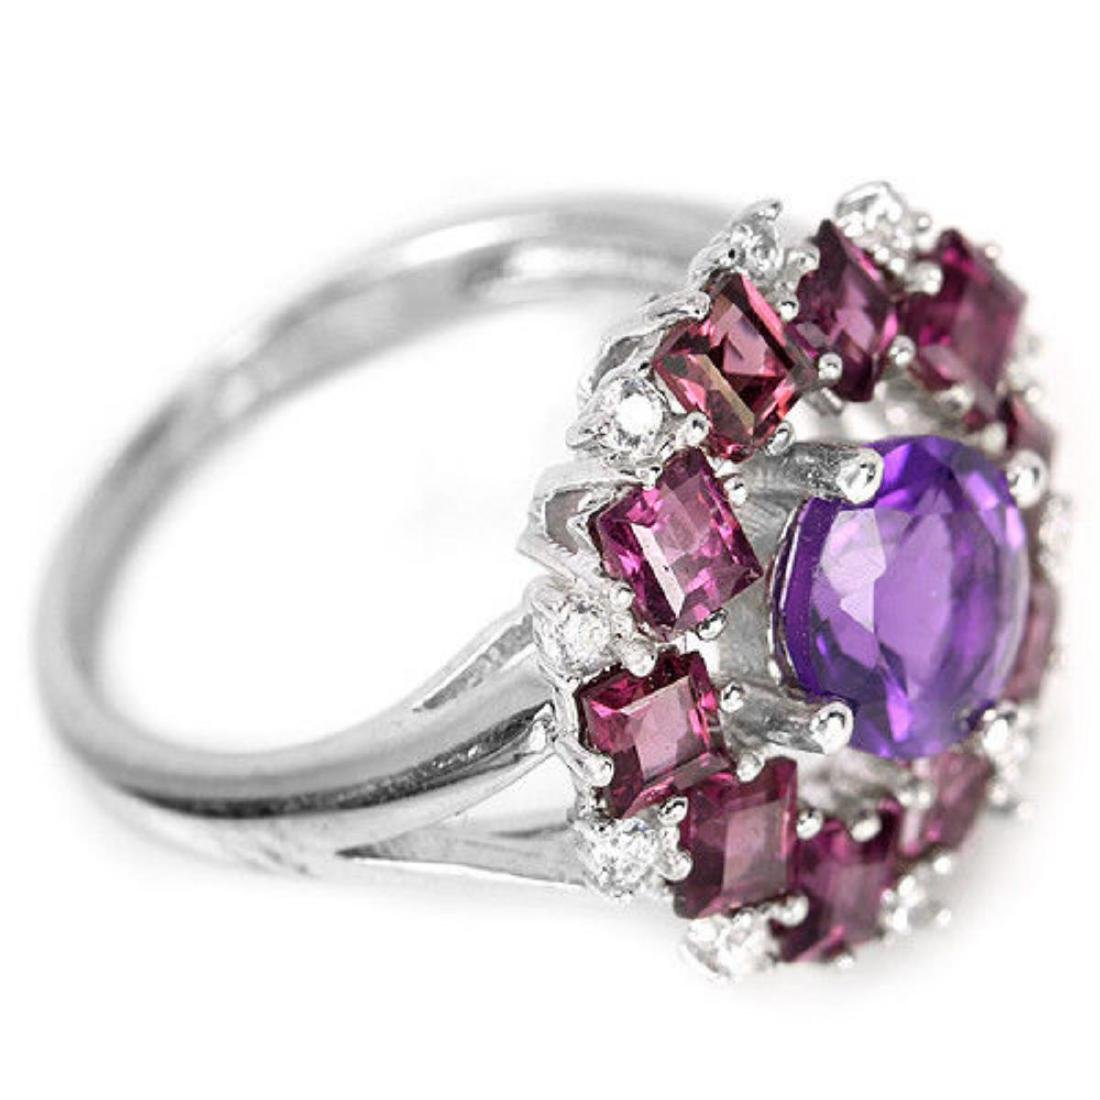 NATURAL AMETHYST, RHODOLITE GARNET Ring - 3